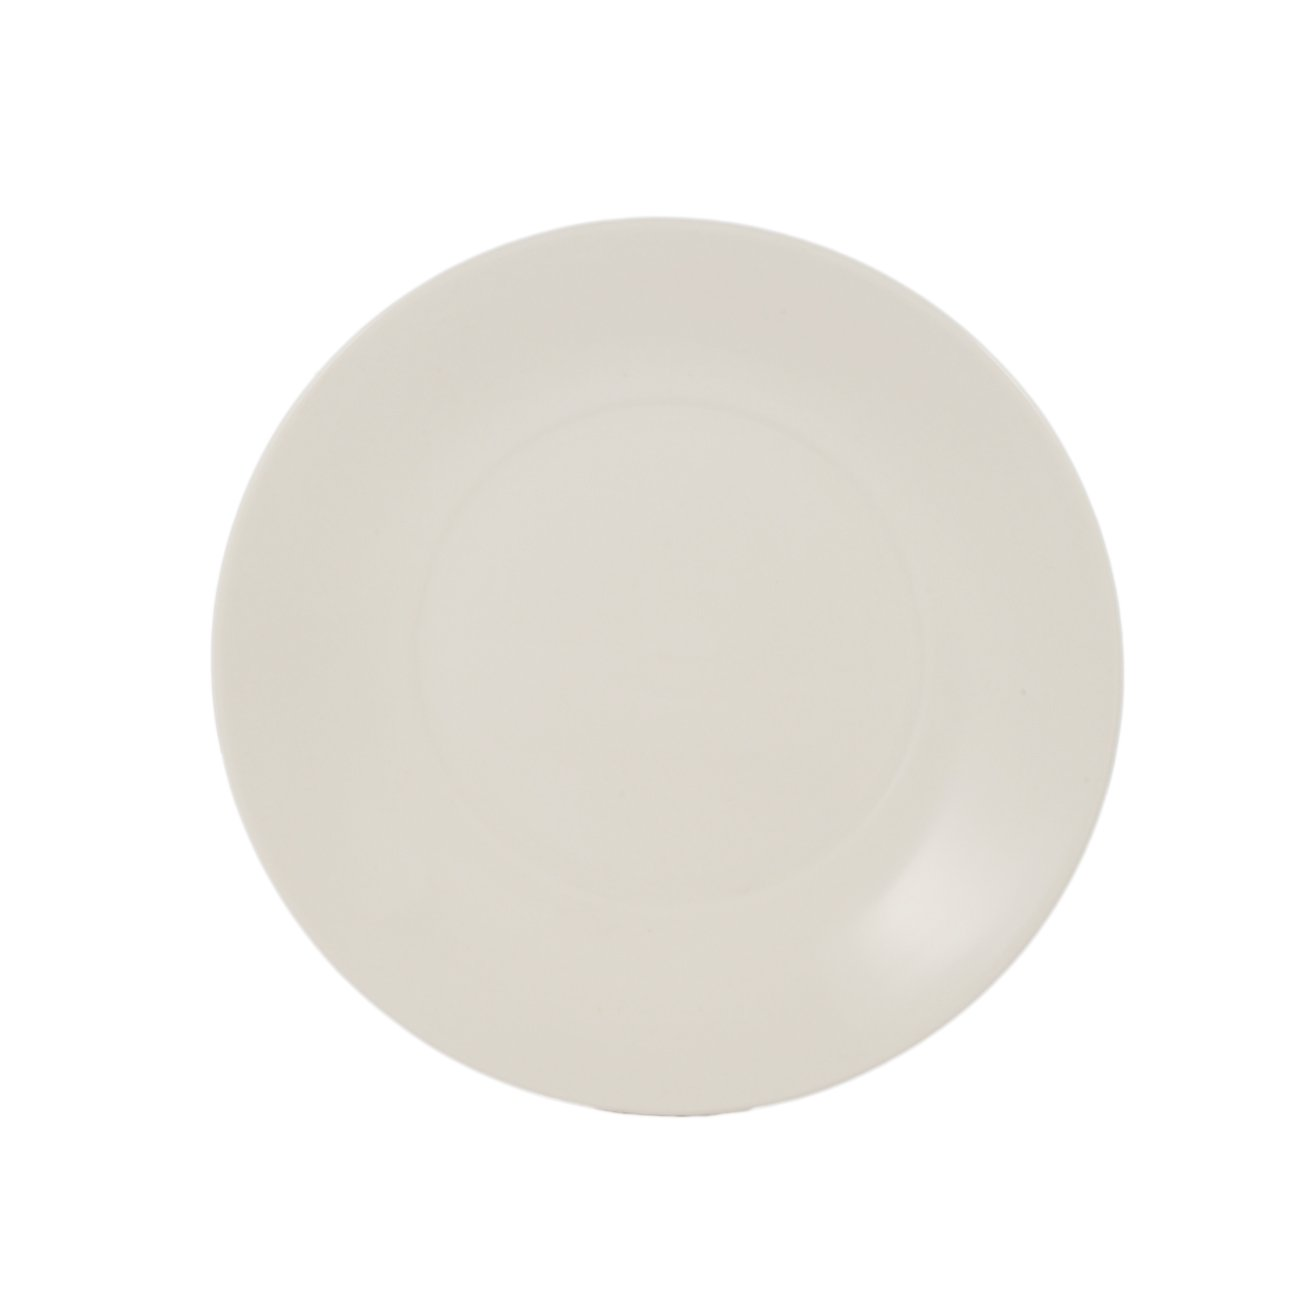 CAC China R-SP21 Porcelain Round Salad Plate, 11-1/2-Inch, Bone White, Box of 12